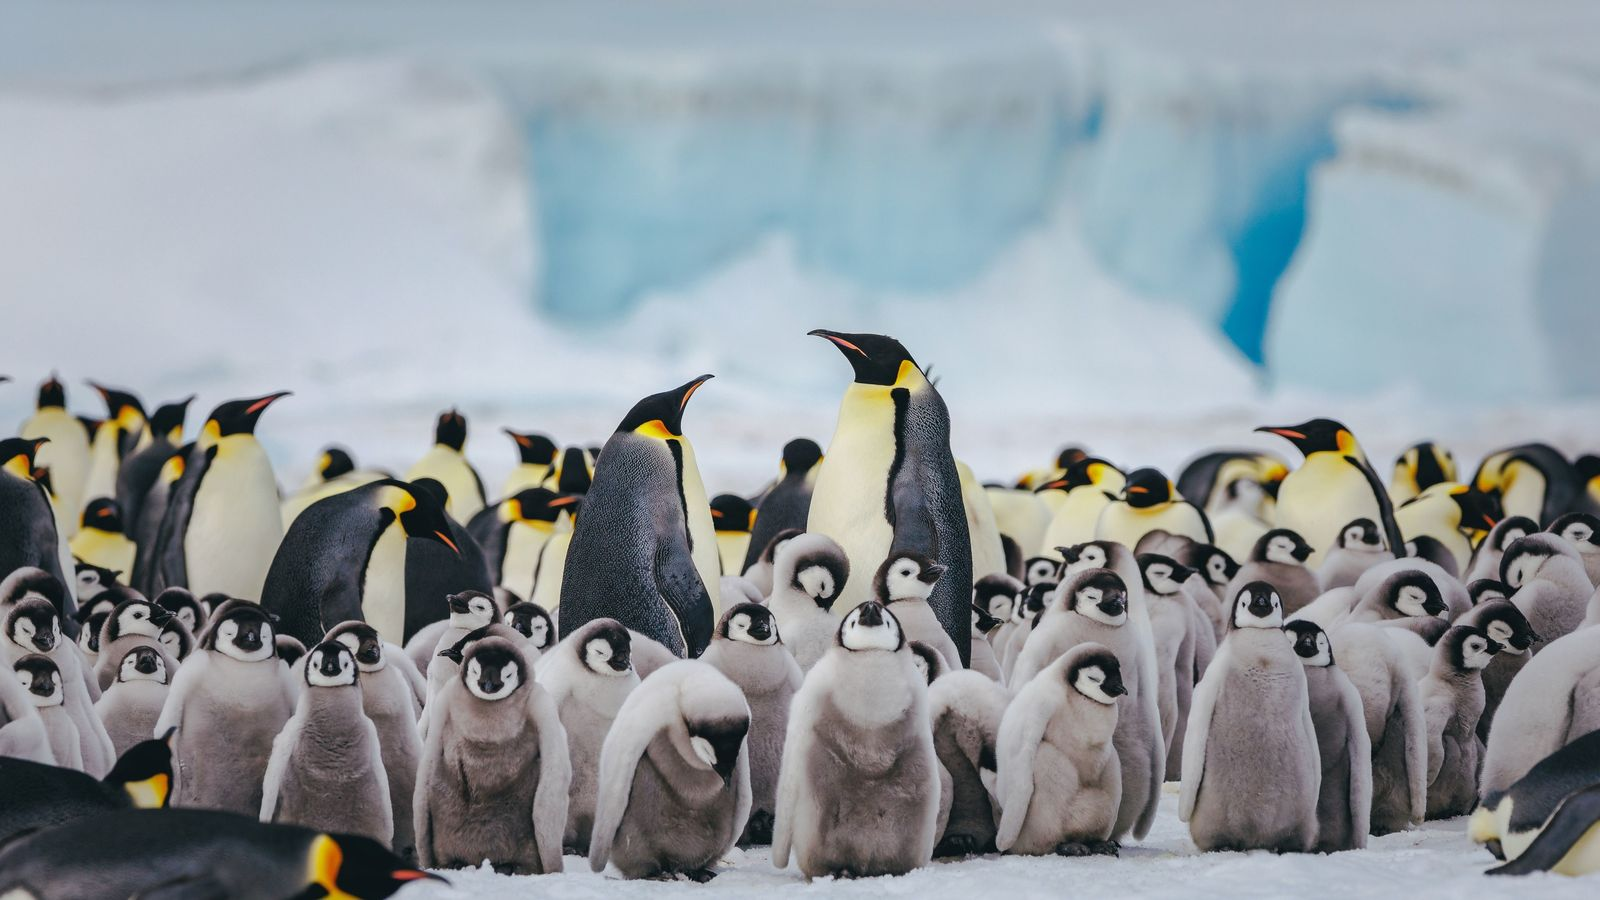 Emperor penguins at Snow Hill Island, located east of the Antarctic Peninsula.